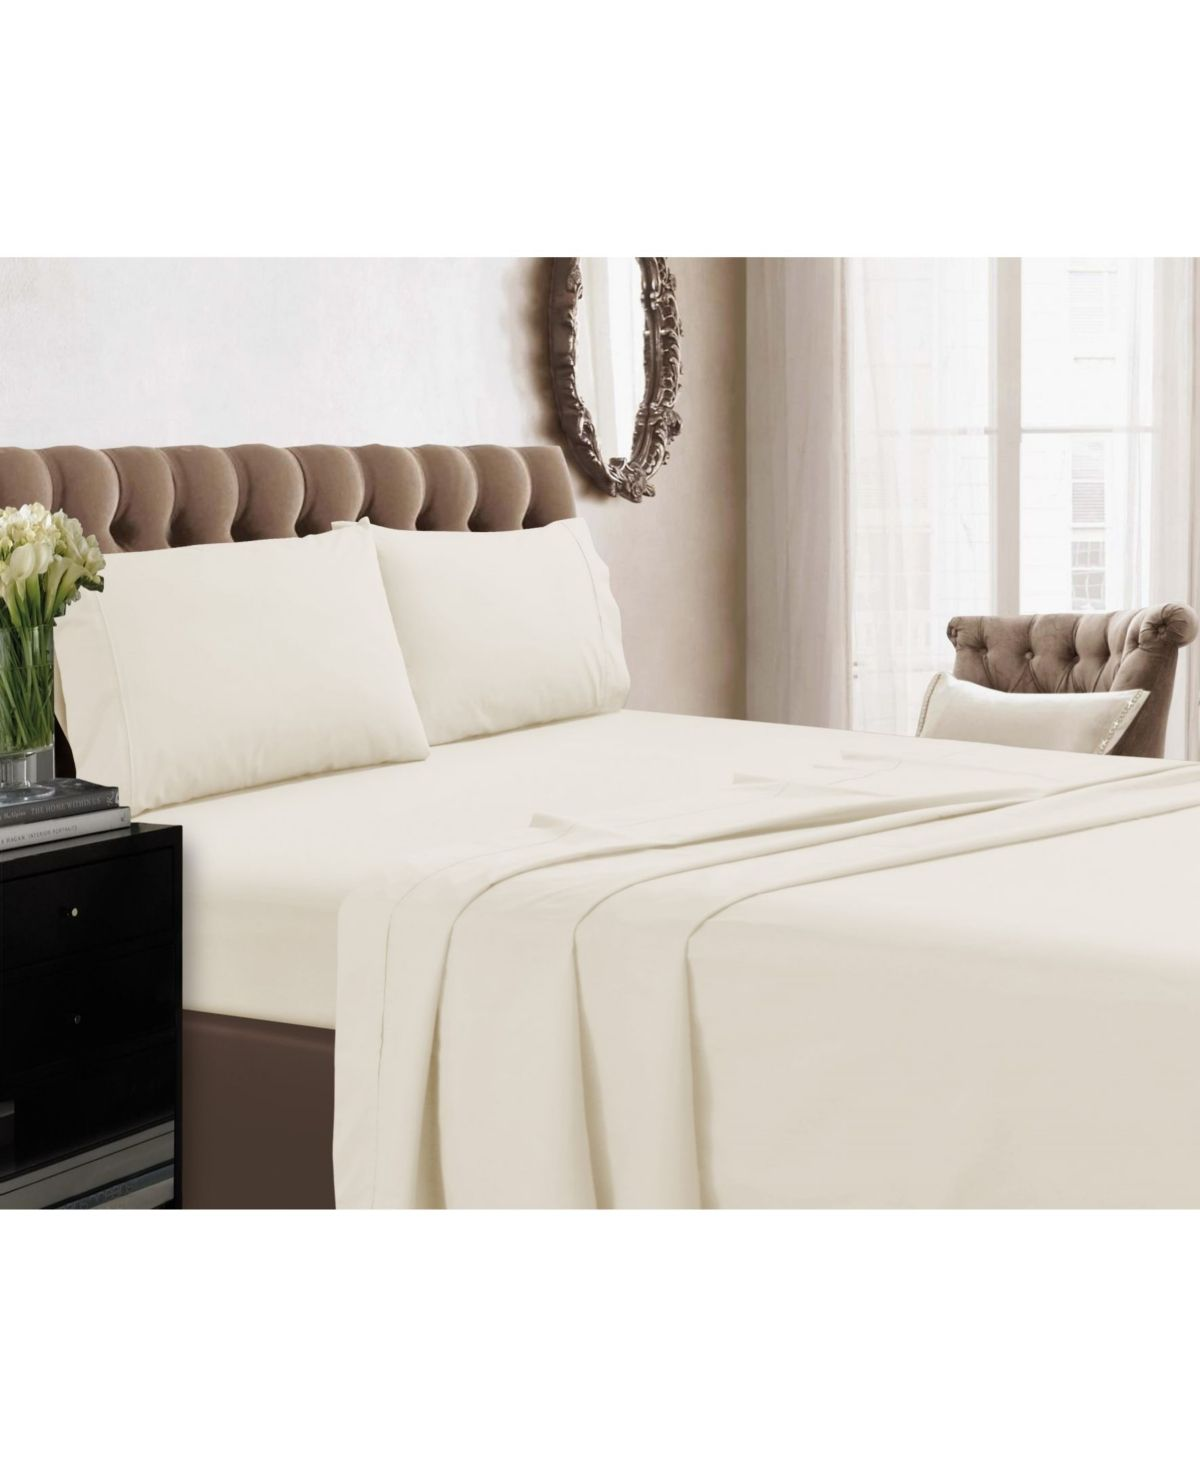 Tribeca Living 350 Thread Count Cotton Percale Extra Deep Pocket Twin Sheet Set Reviews Sheets Pillowcases Bed Bath Macy S In 2021 Tribeca Living White Bed Set Bedding Sets Twin xl deep pocket sheets